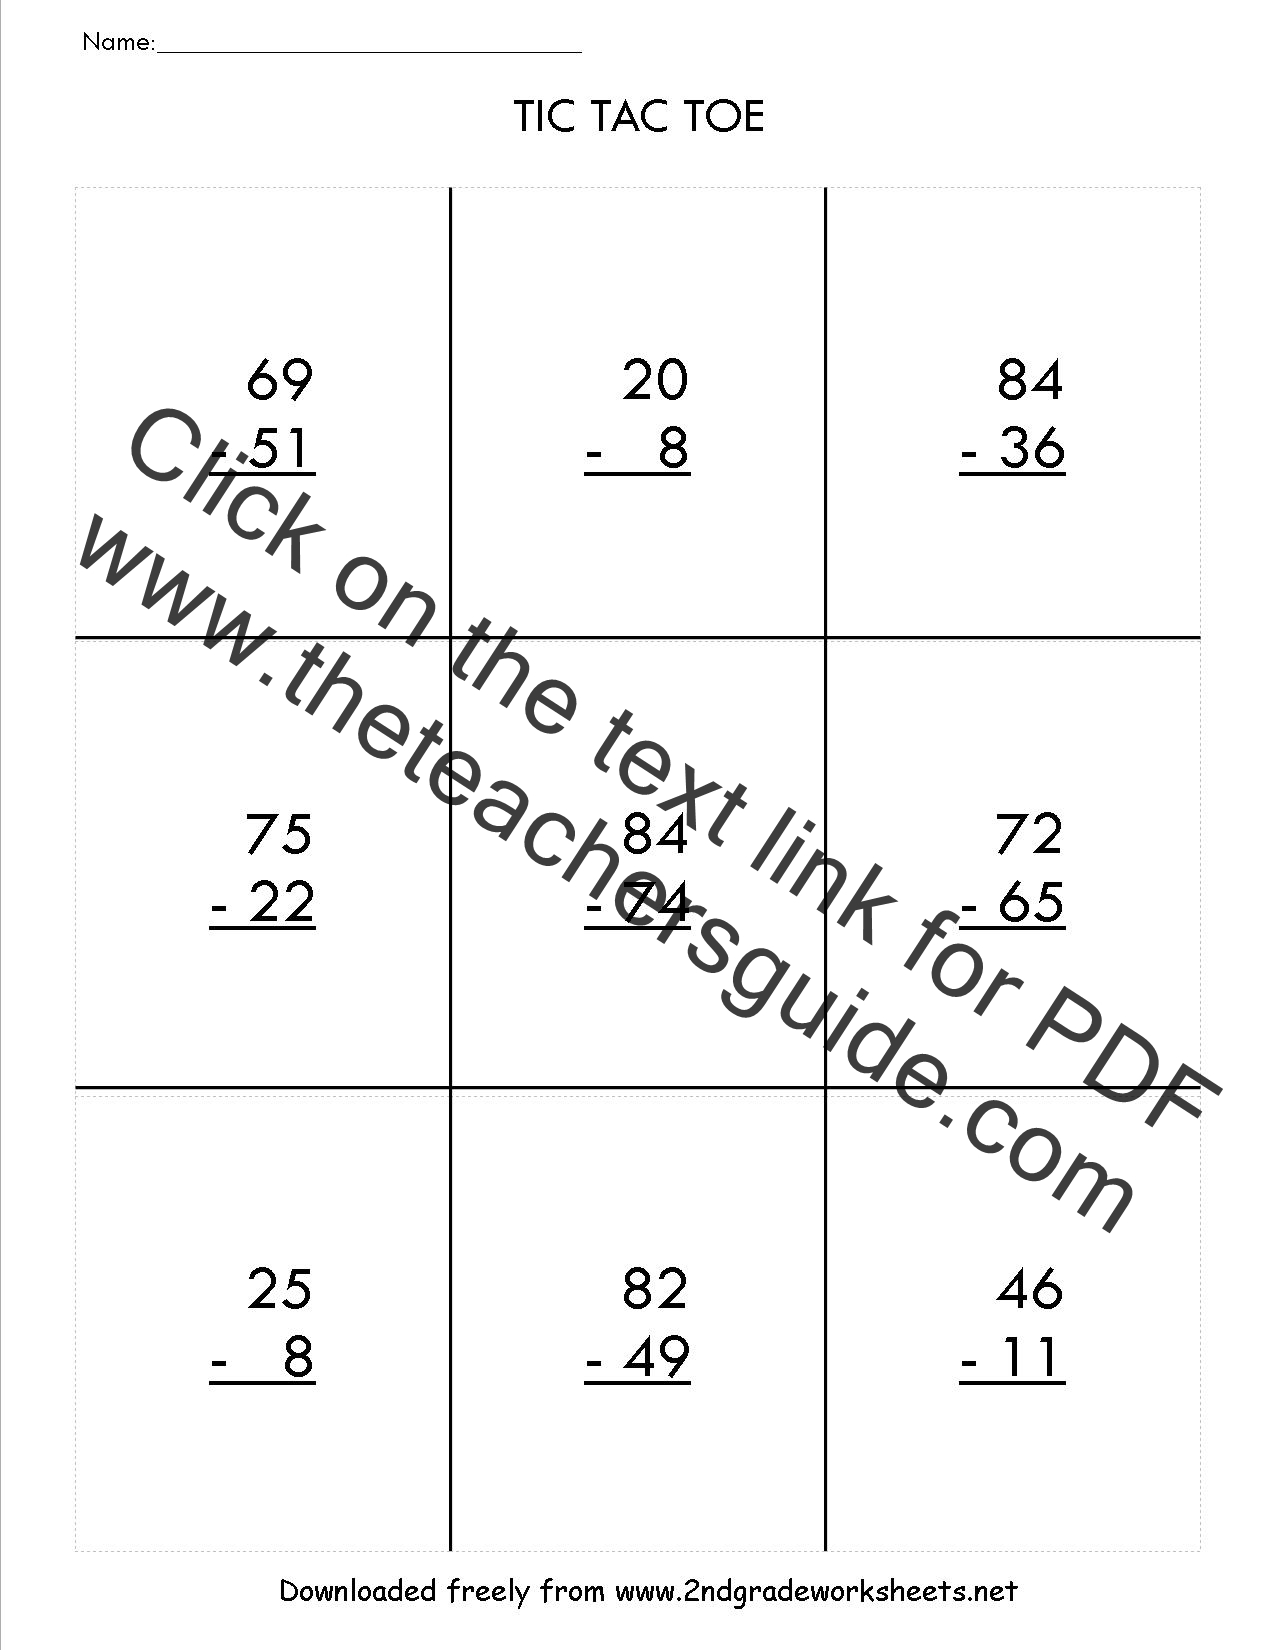 worksheet Subtraction Worksheet With Regrouping two digit subtraction worksheets with regrouping tic tac toe